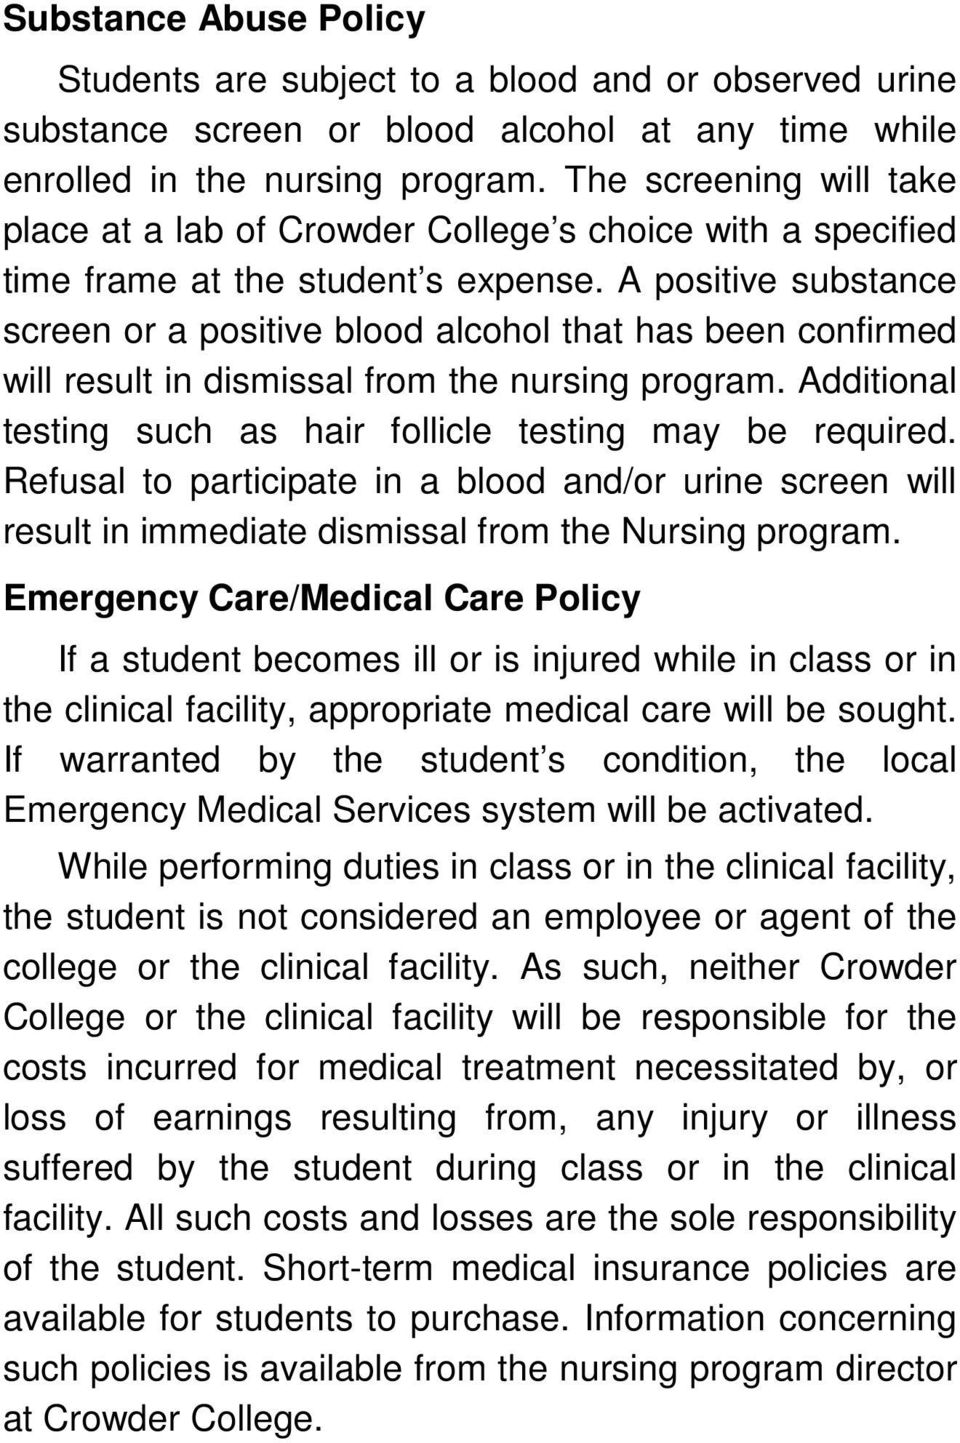 A positive substance screen or a positive blood alcohol that has been confirmed will result in dismissal from the nursing program. Additional testing such as hair follicle testing may be required.